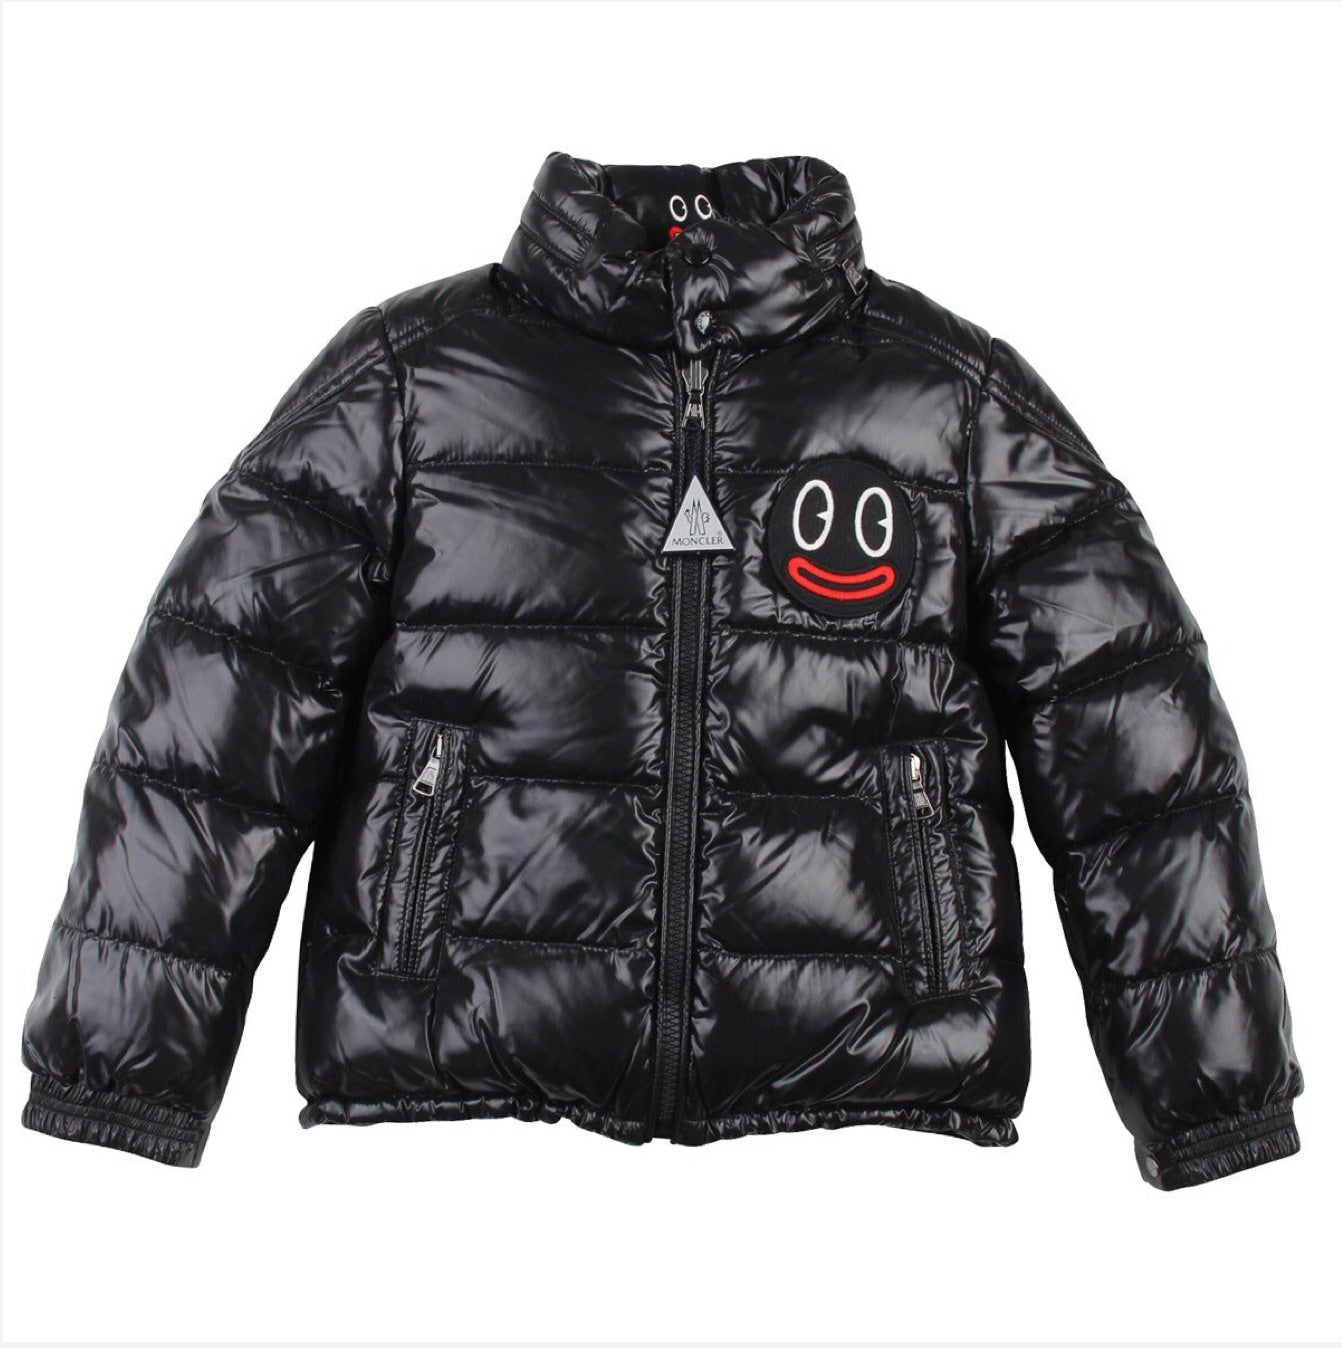 40534a12b Outerwear Company Moncler Releases Questionable Collection Featuring ...